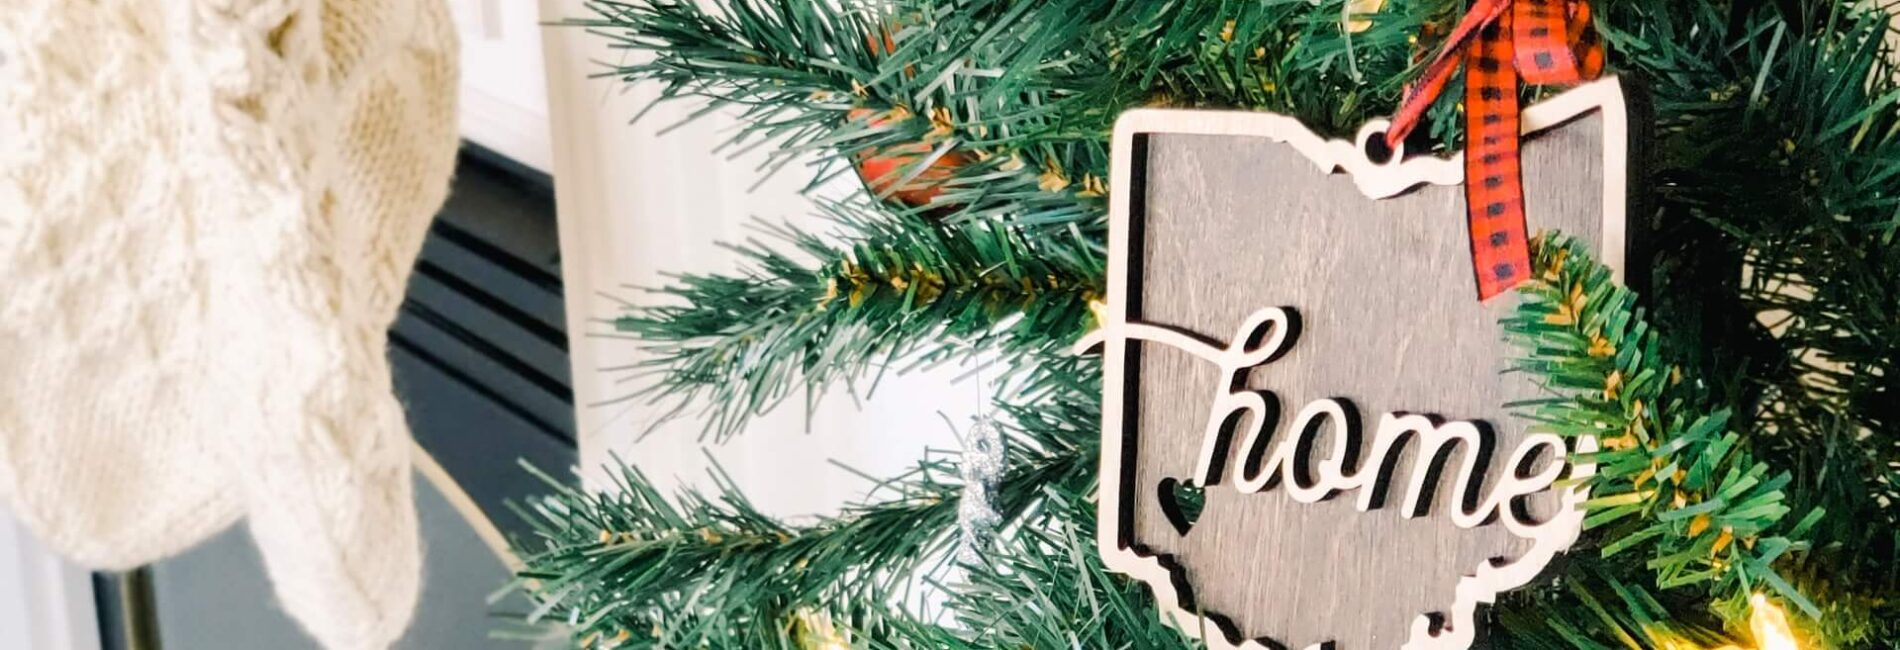 Cherished Christmas Traditions That Last!